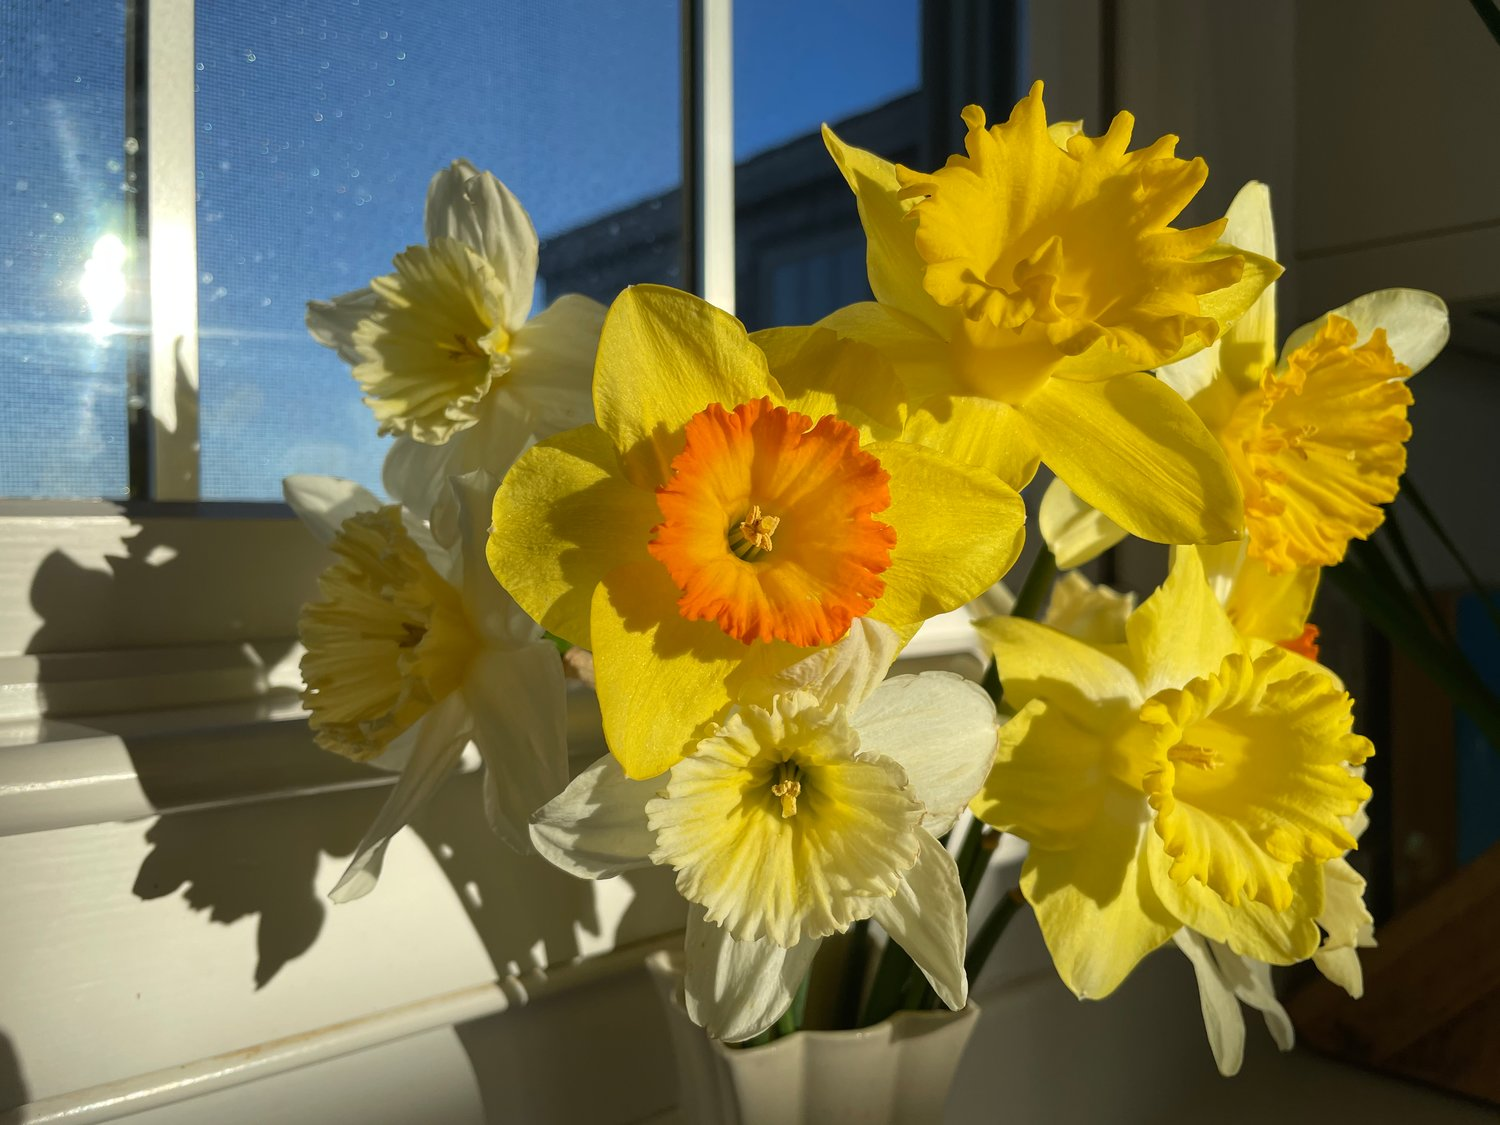 Daffodils in the early-morning light April 9.